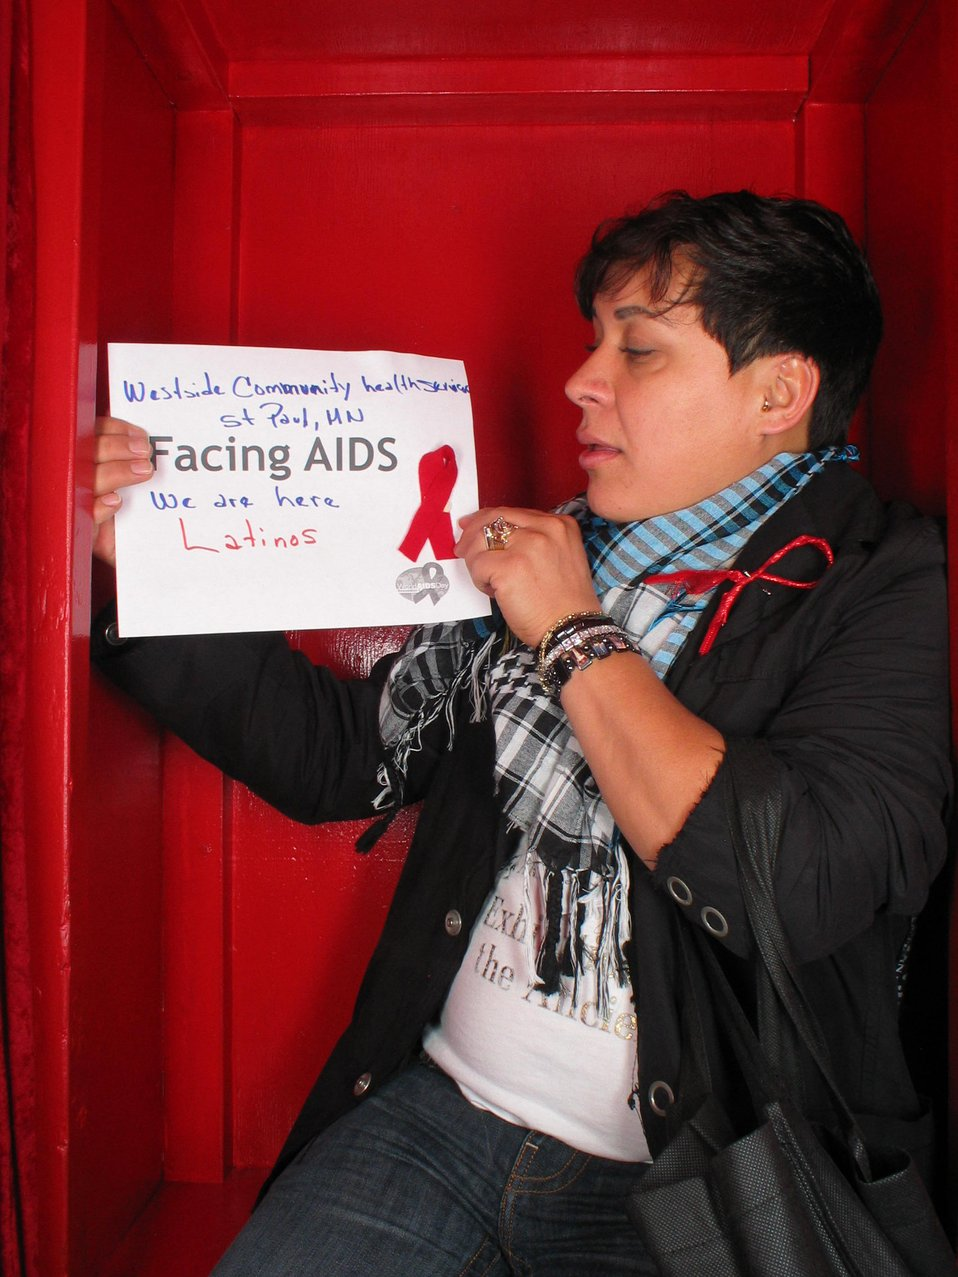 Facing AIDS We are here Latinos.